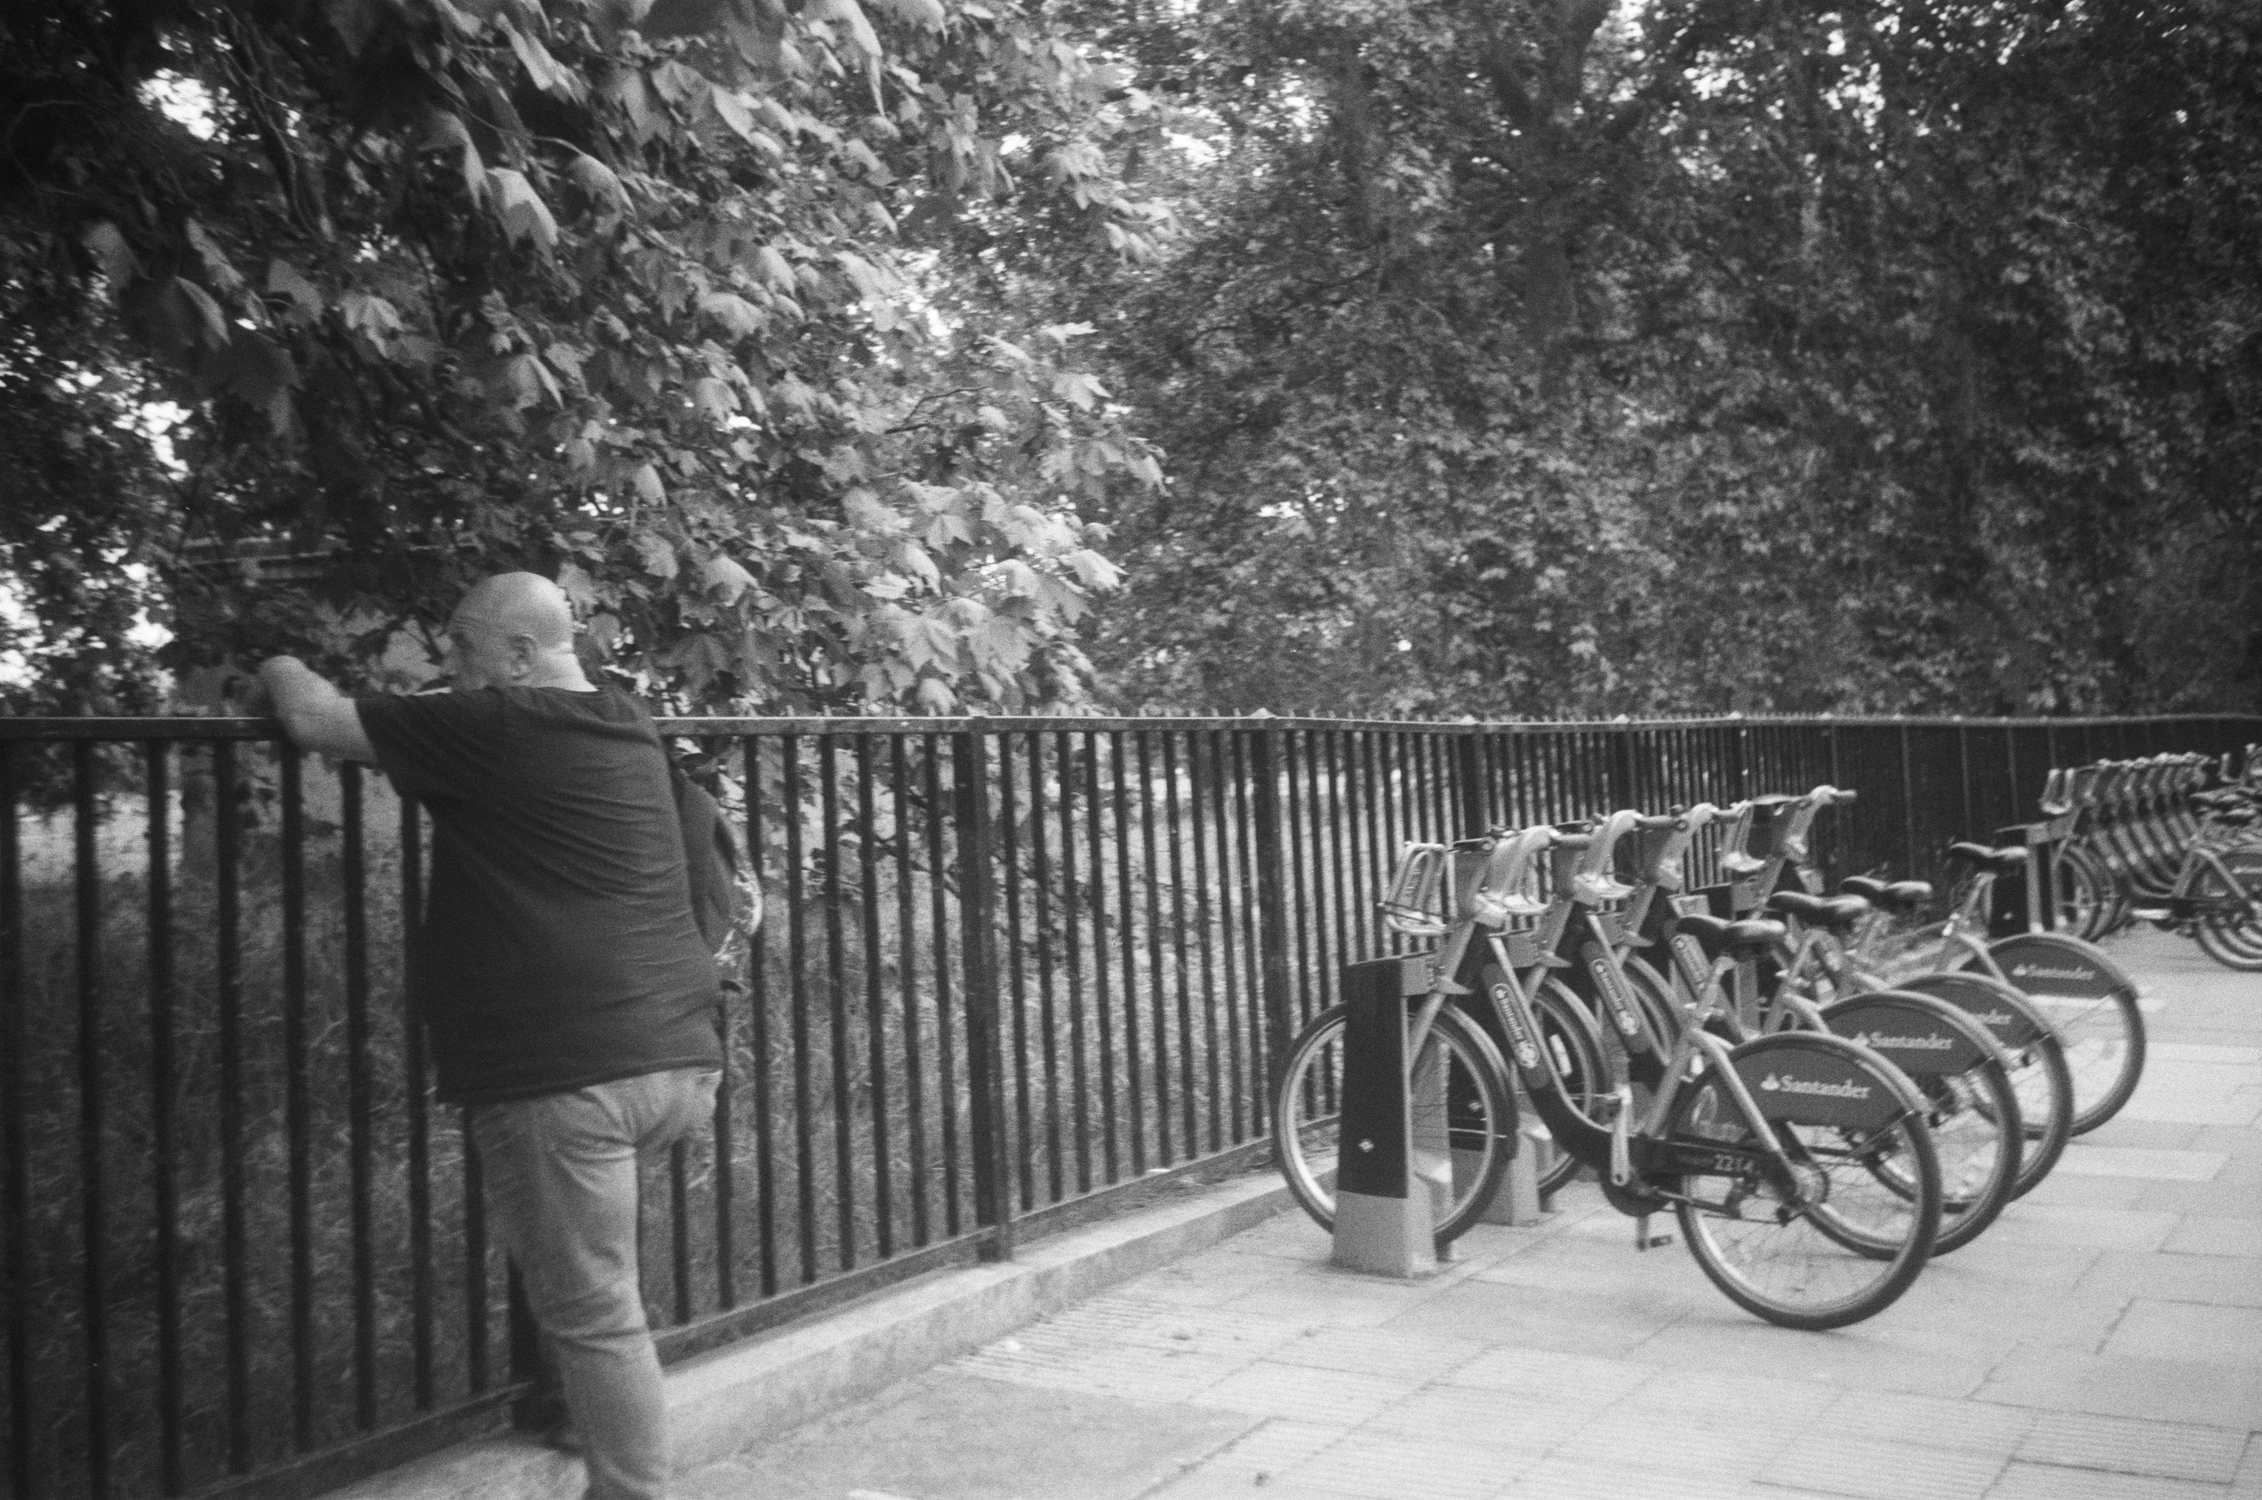 Man leaning against fence and bikes (Pic: Stephen Dowling)